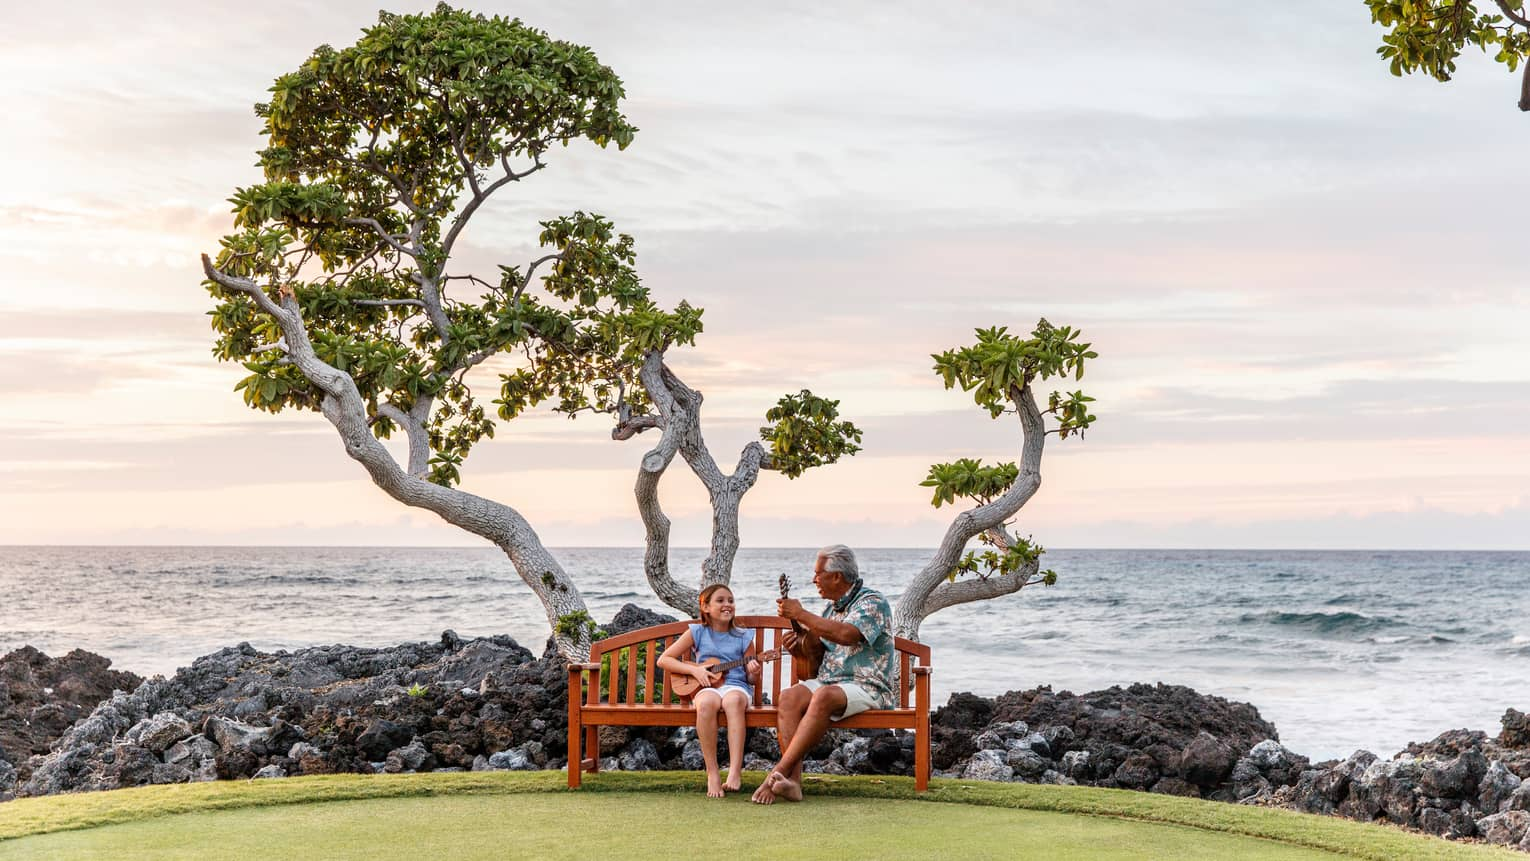 Hawaiian elder and young girl play ukuleles on bench under tree by black rocks, ocean